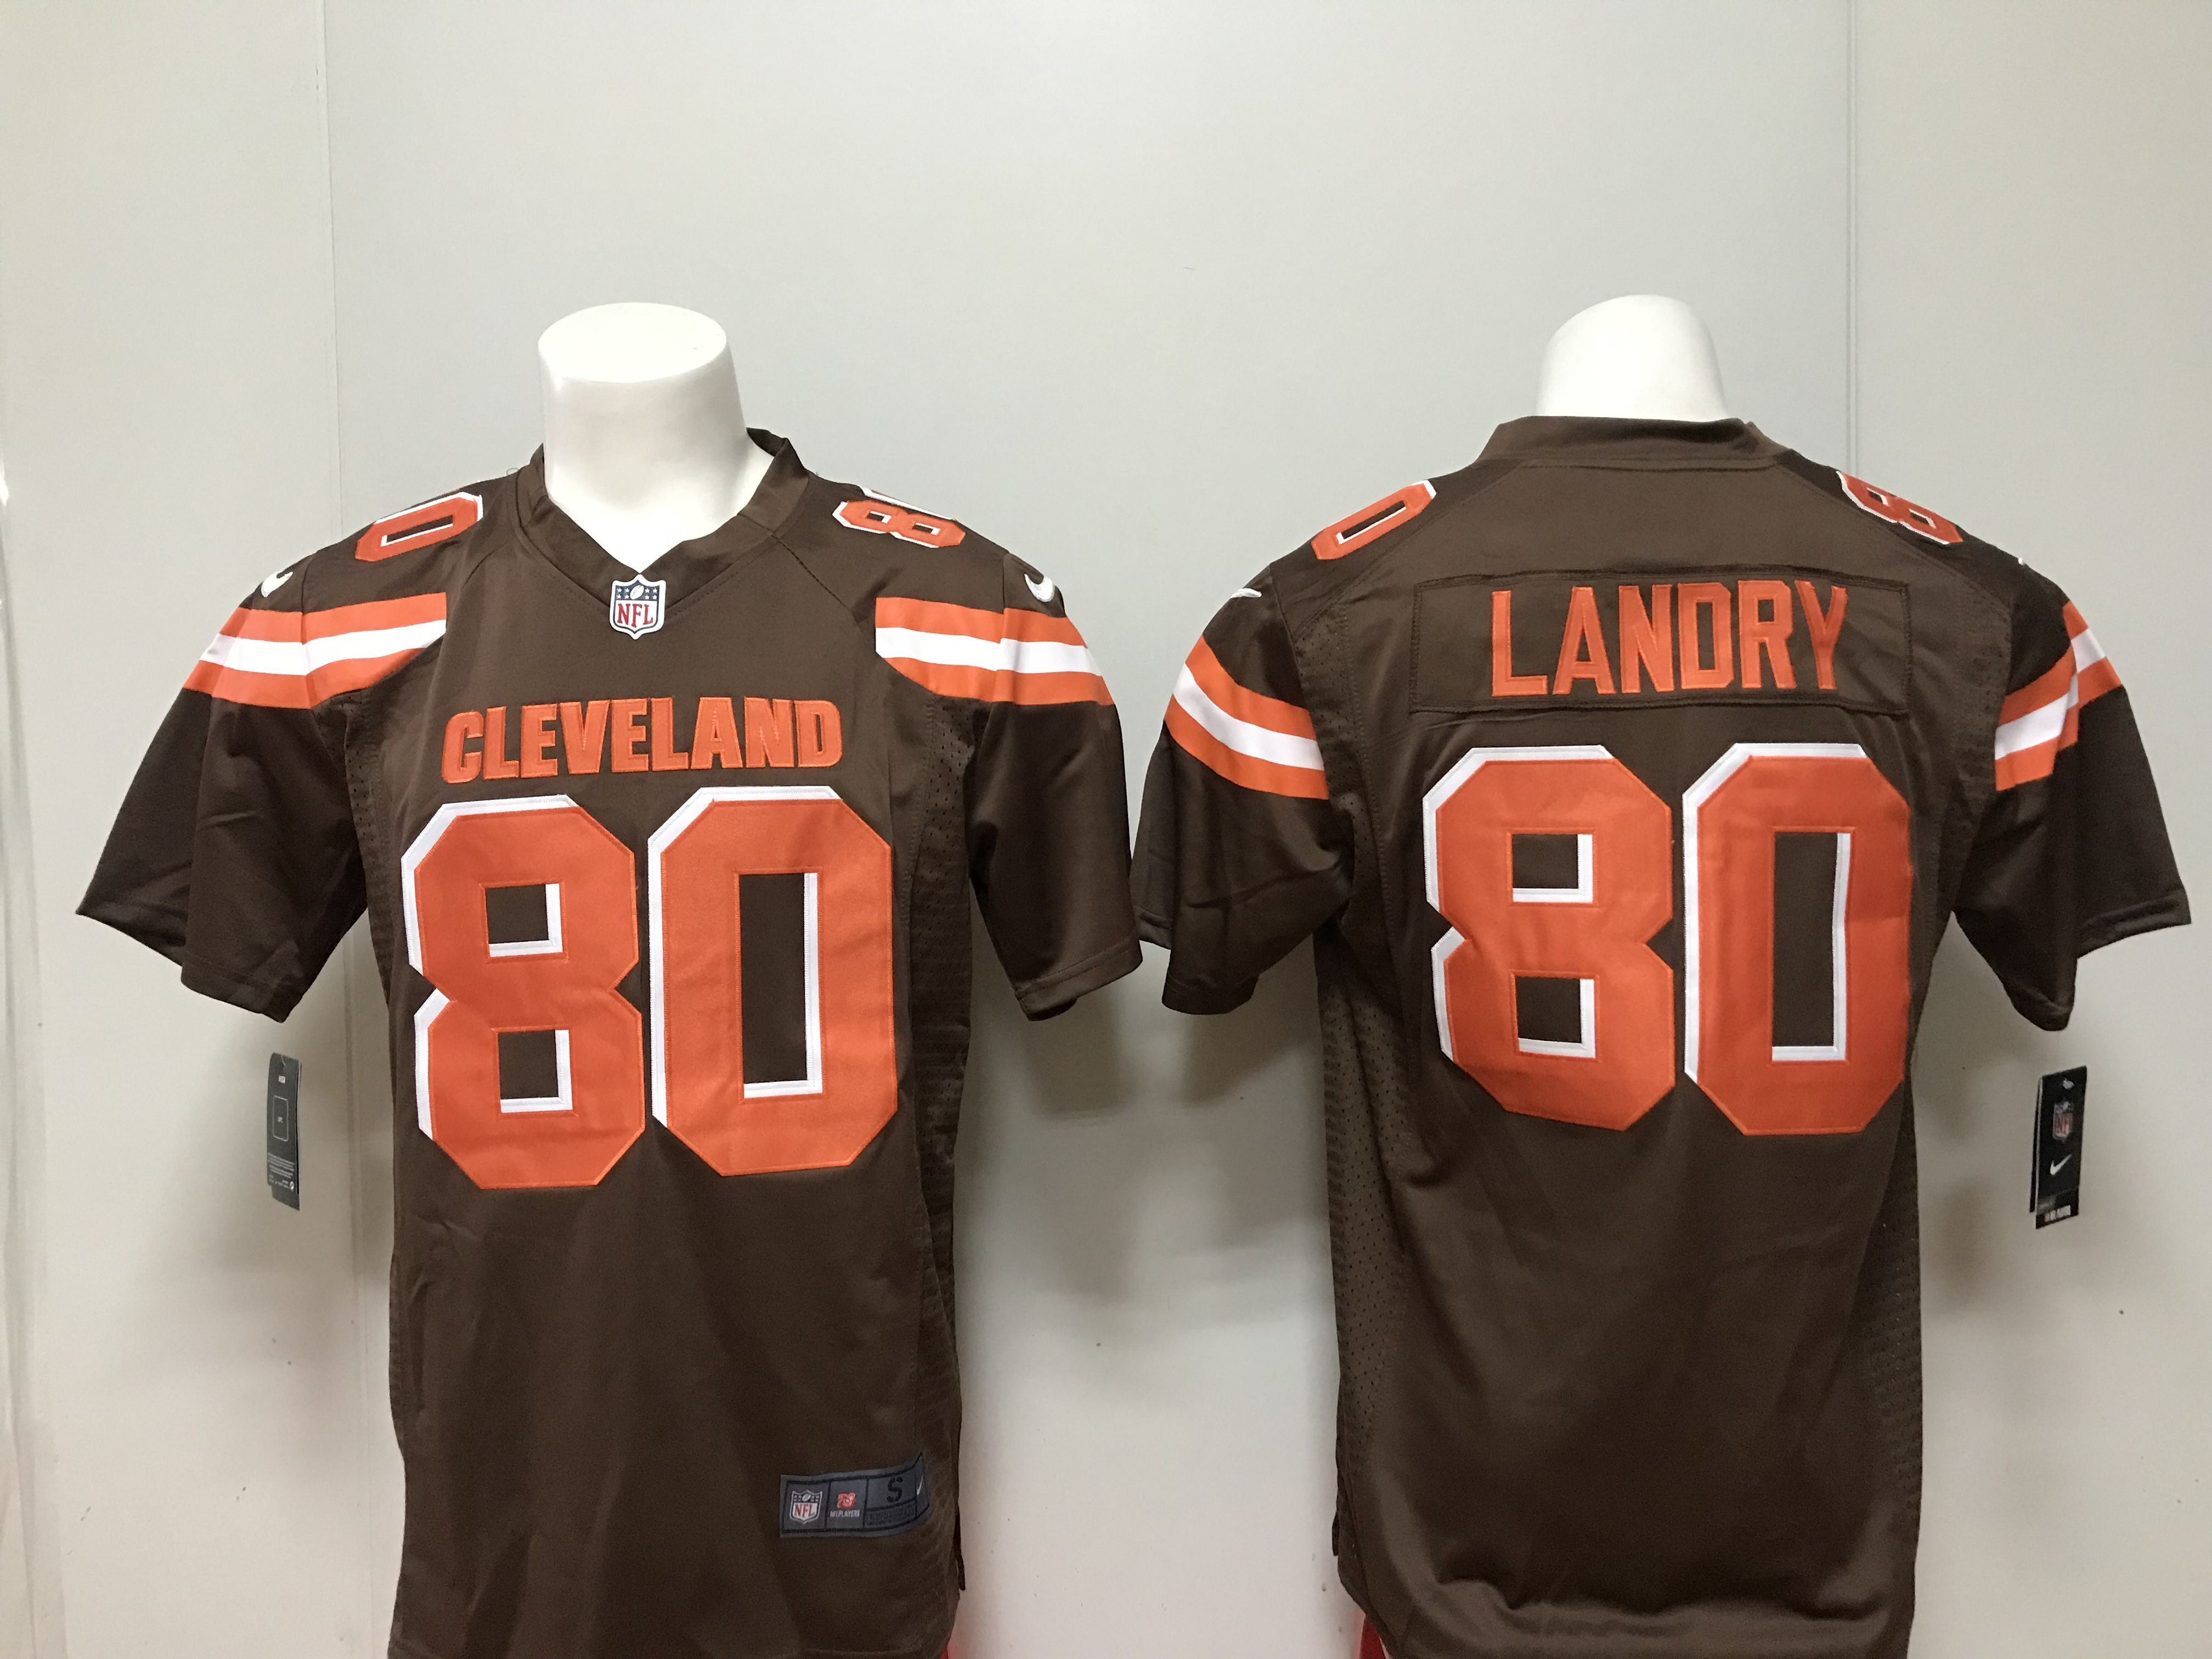 official photos 459b6 09c56 Men Cleveland Browns 80 Landry Nike brown 2018 NFL Draft ...